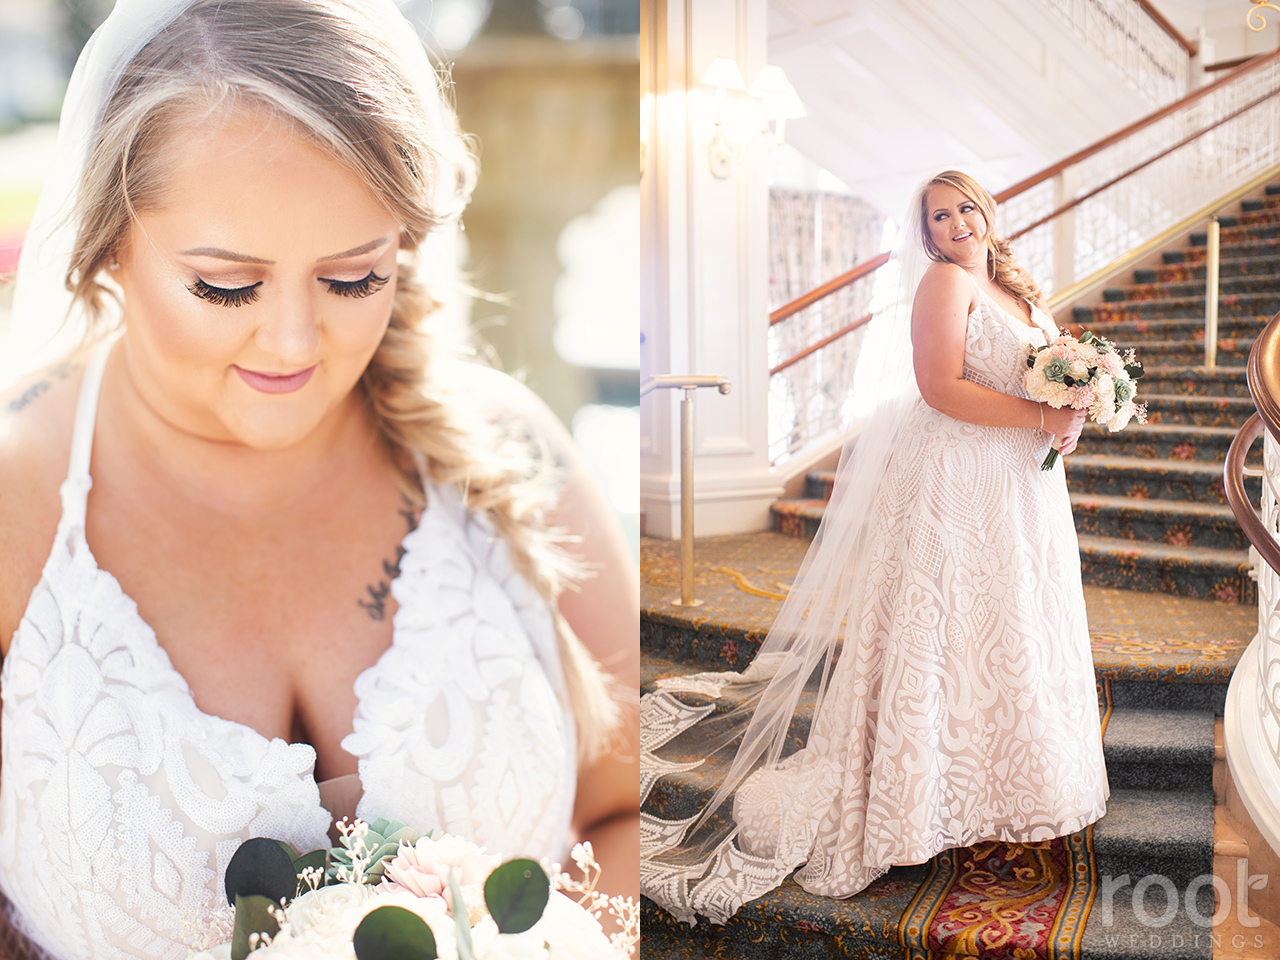 Miss Hayley Paige wedding gown